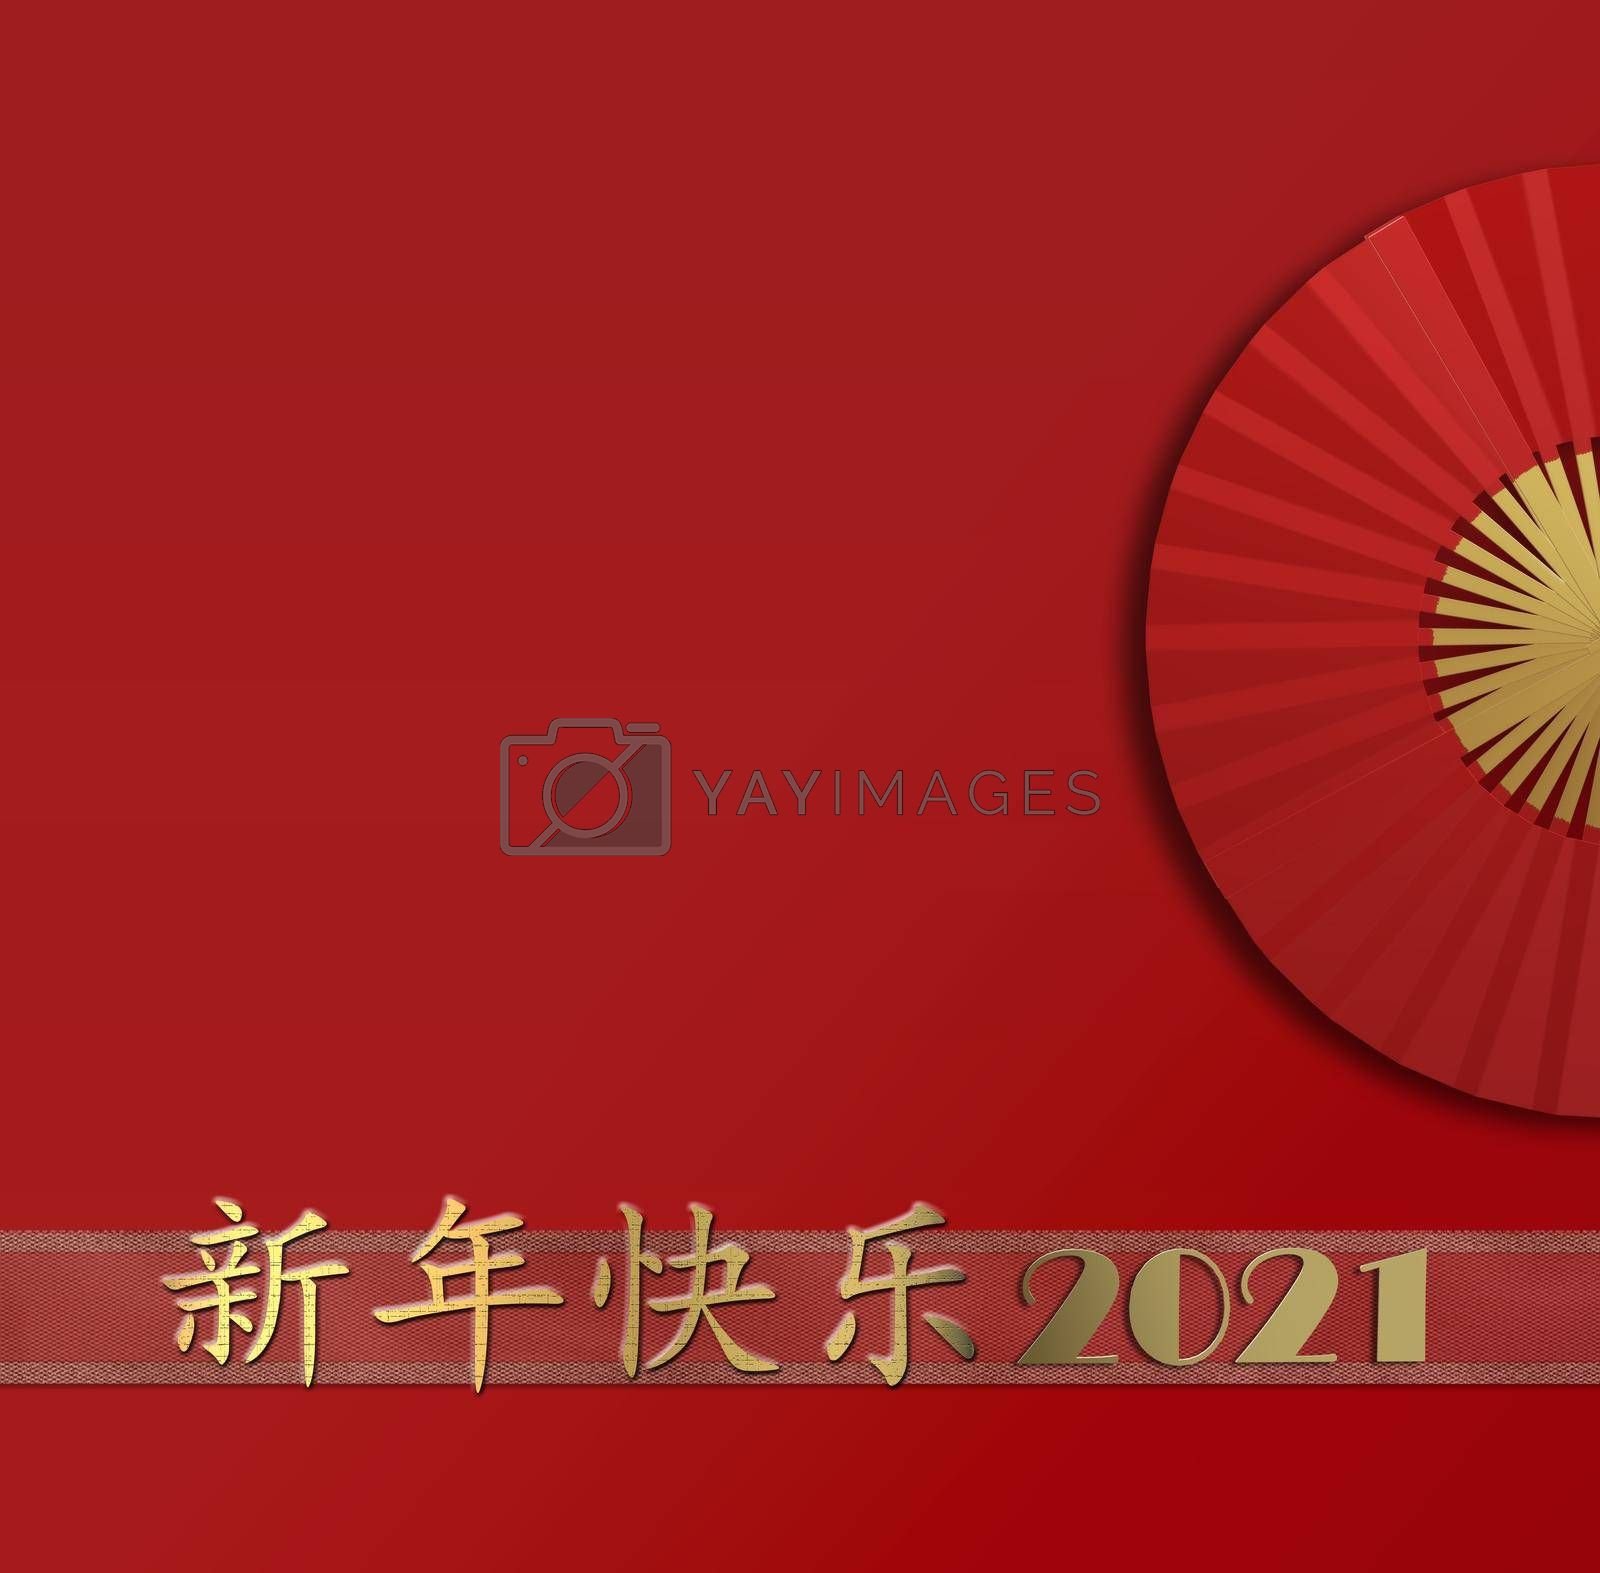 Happy New Year 2021 card. Happy Chinese new year golden text in Chinese, digit 2021, fan on red background.. Design for greetings card, invitation, posters, brochure, calendar. 3D illustration